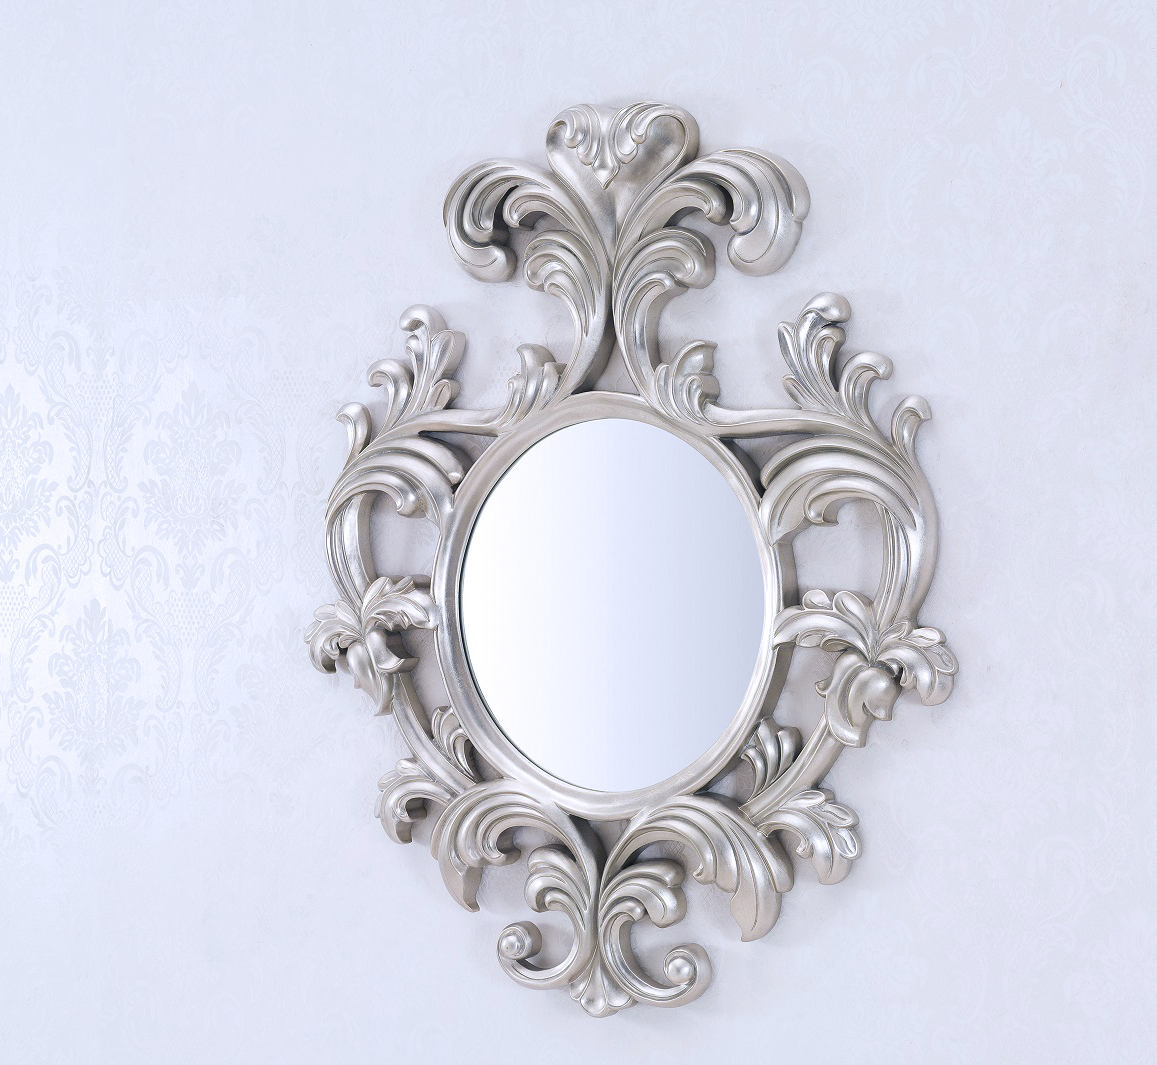 Decorative Wall Mirror – Geneve Silver Pertaining To Preferred Decorative Large Wall Mirrors (View 7 of 20)